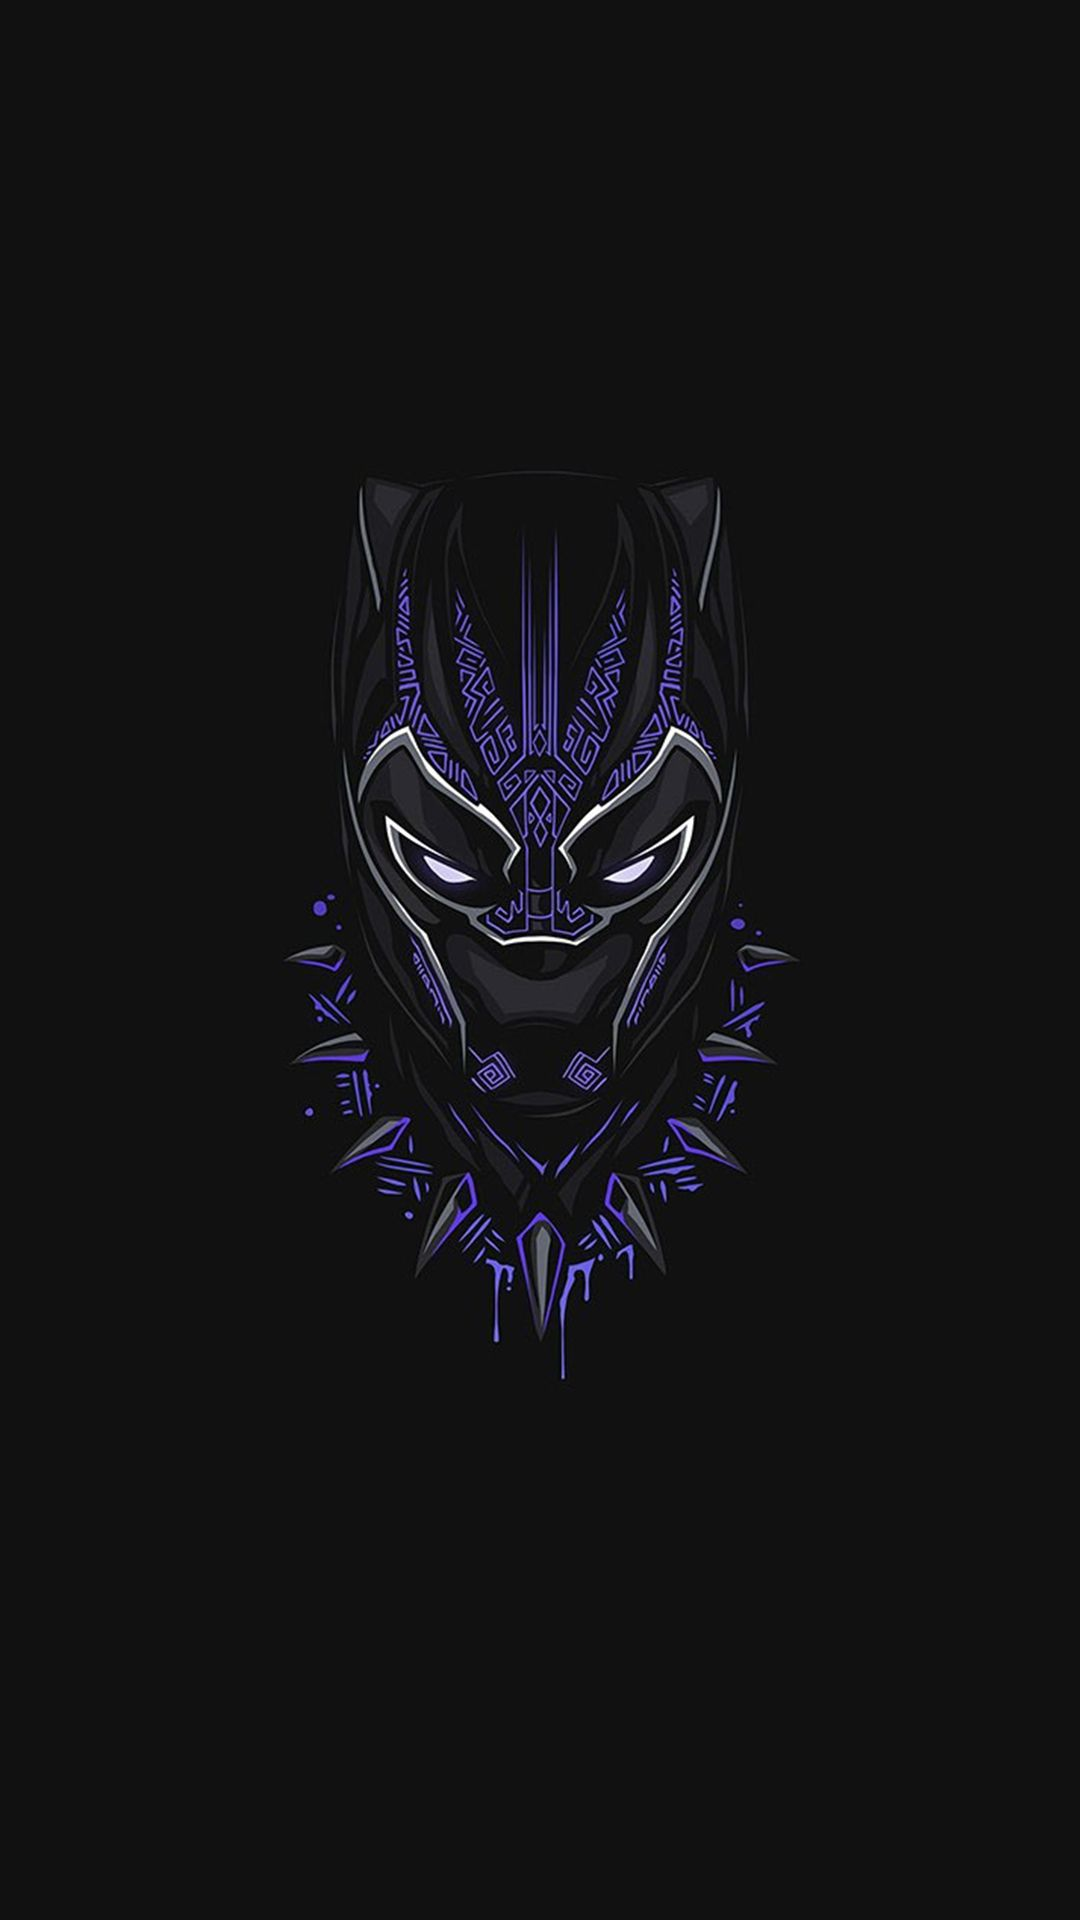 Black Panther Purple Minimal Iphone Wallpaper Averteam Avermusic Instagram Avermusic Youtube Ave Black Panther Marvel Superhero Wallpaper Marvel Wallpaper